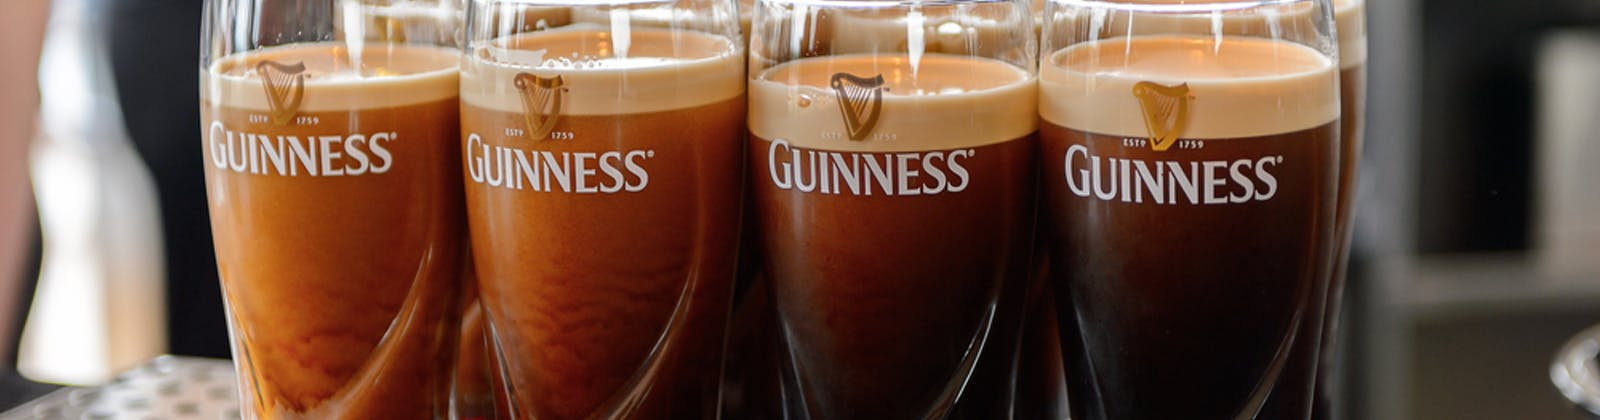 eight glasses of guinness beer